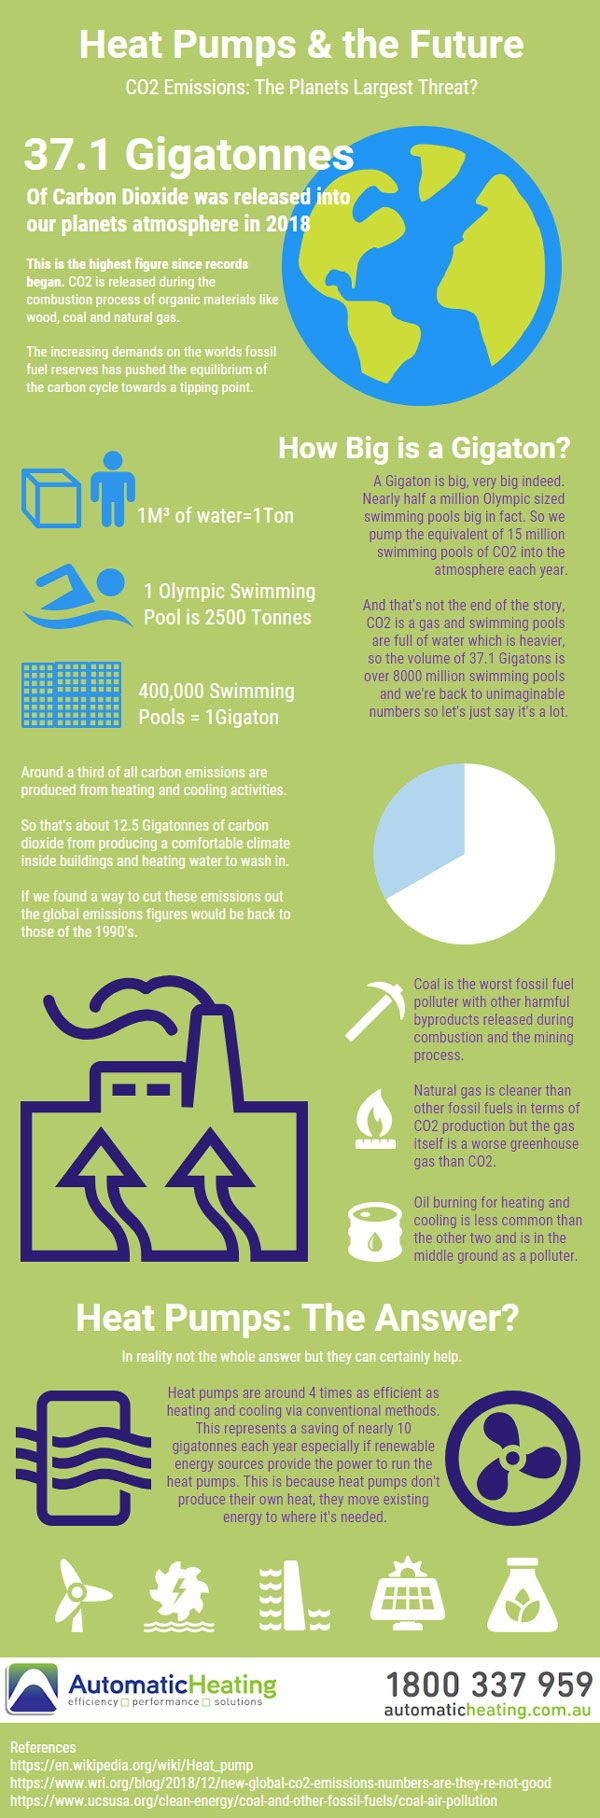 Infographic Heat Pumps The Future Heat Pump Climate Change